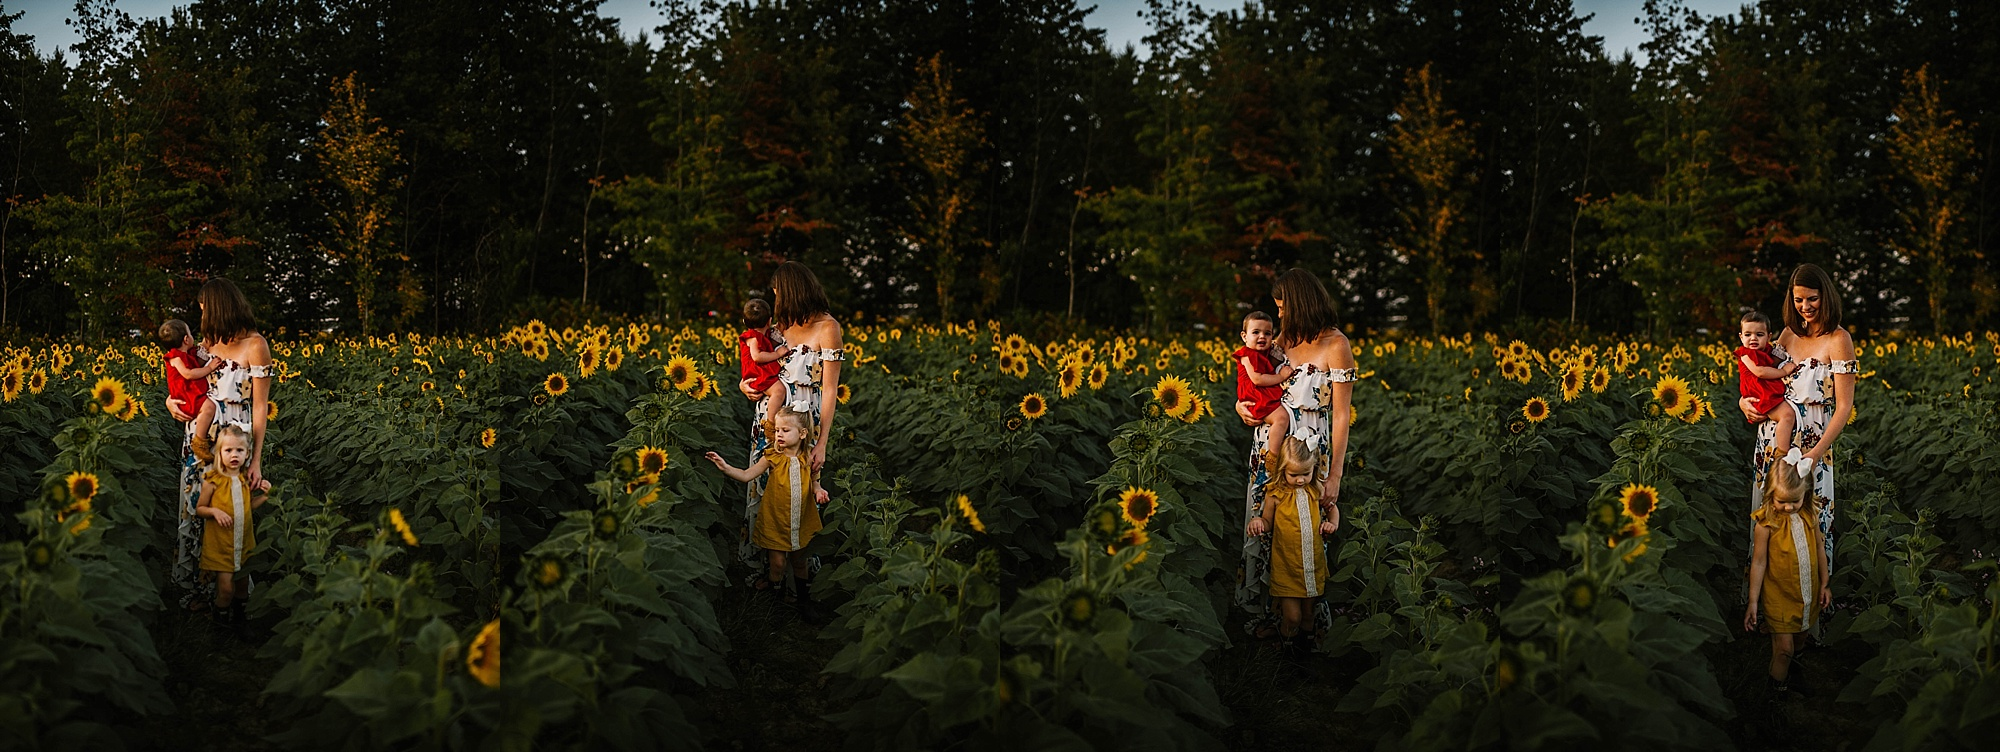 lauren-grayson-photography-cleveland-ohio-photographer-sunflower-fields-sunset-golden-hour-photo-shoot-mommy-and-me-family-child-photographer_0562.jpg